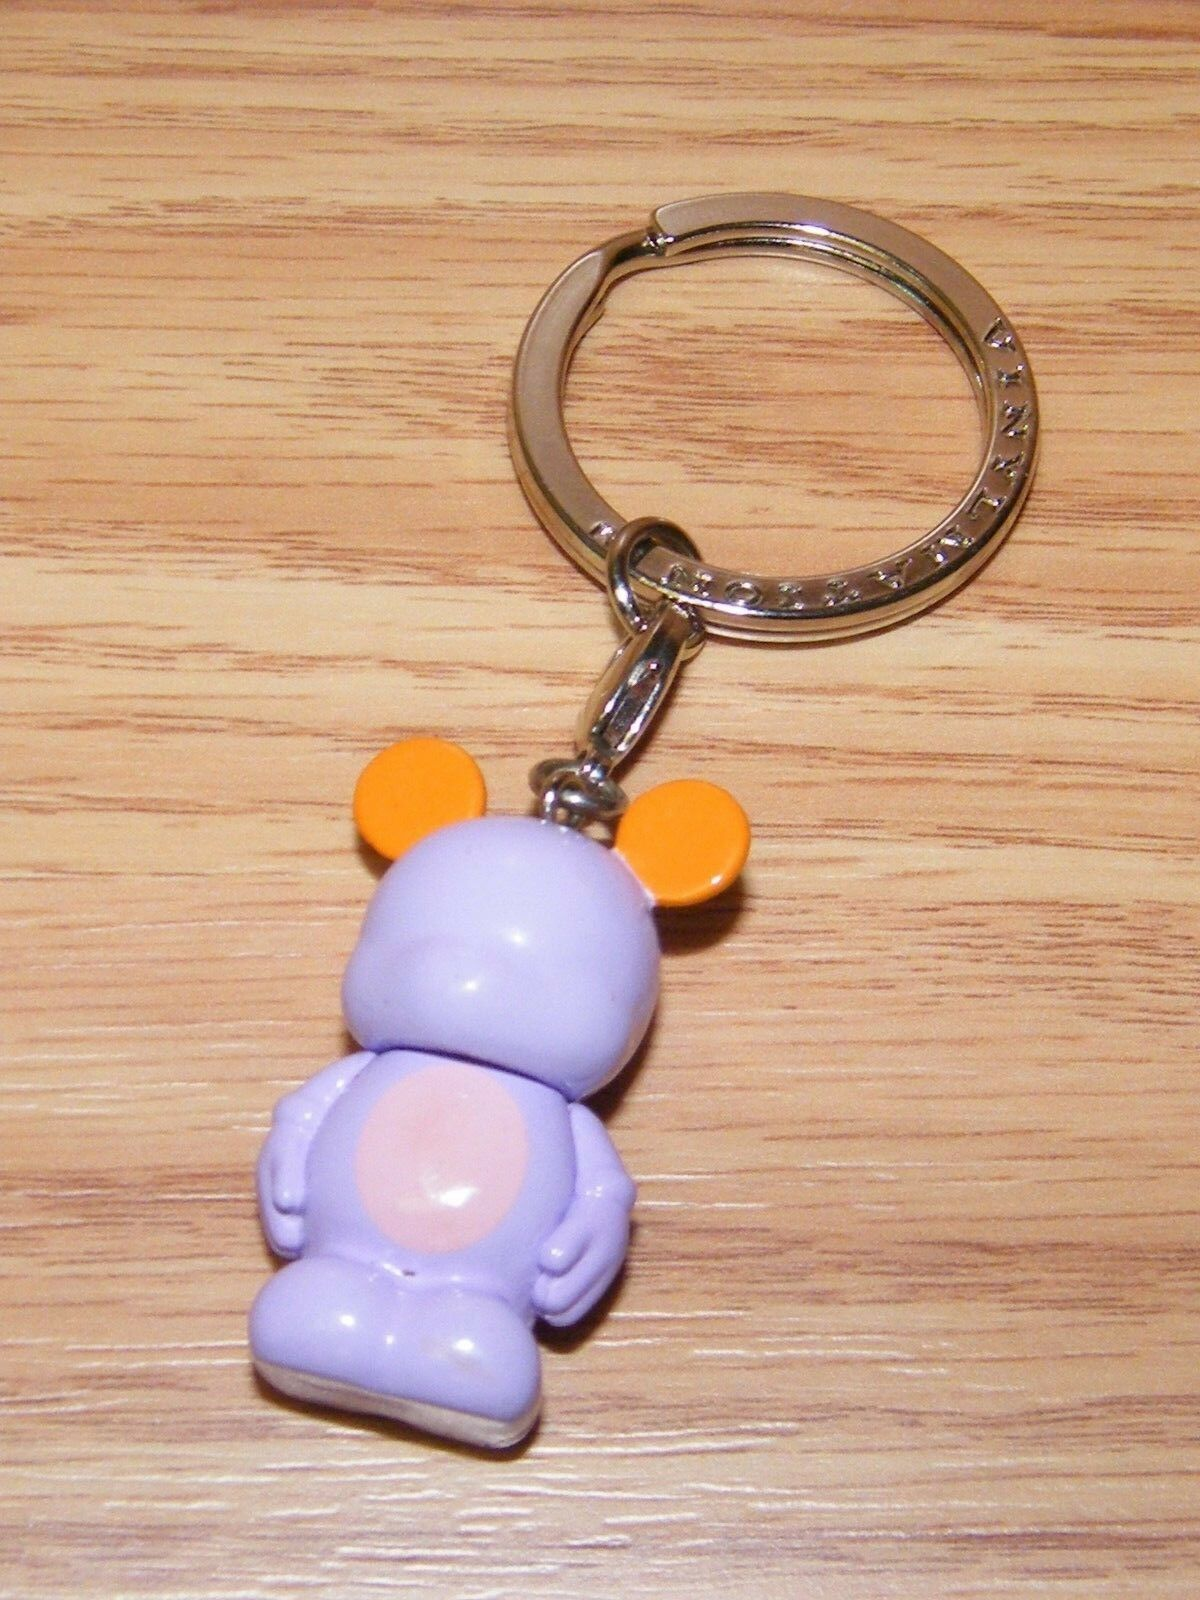 Genuine Vinylmation Figment The lila Dinosaur Collectible 2  (inch) Key Chain